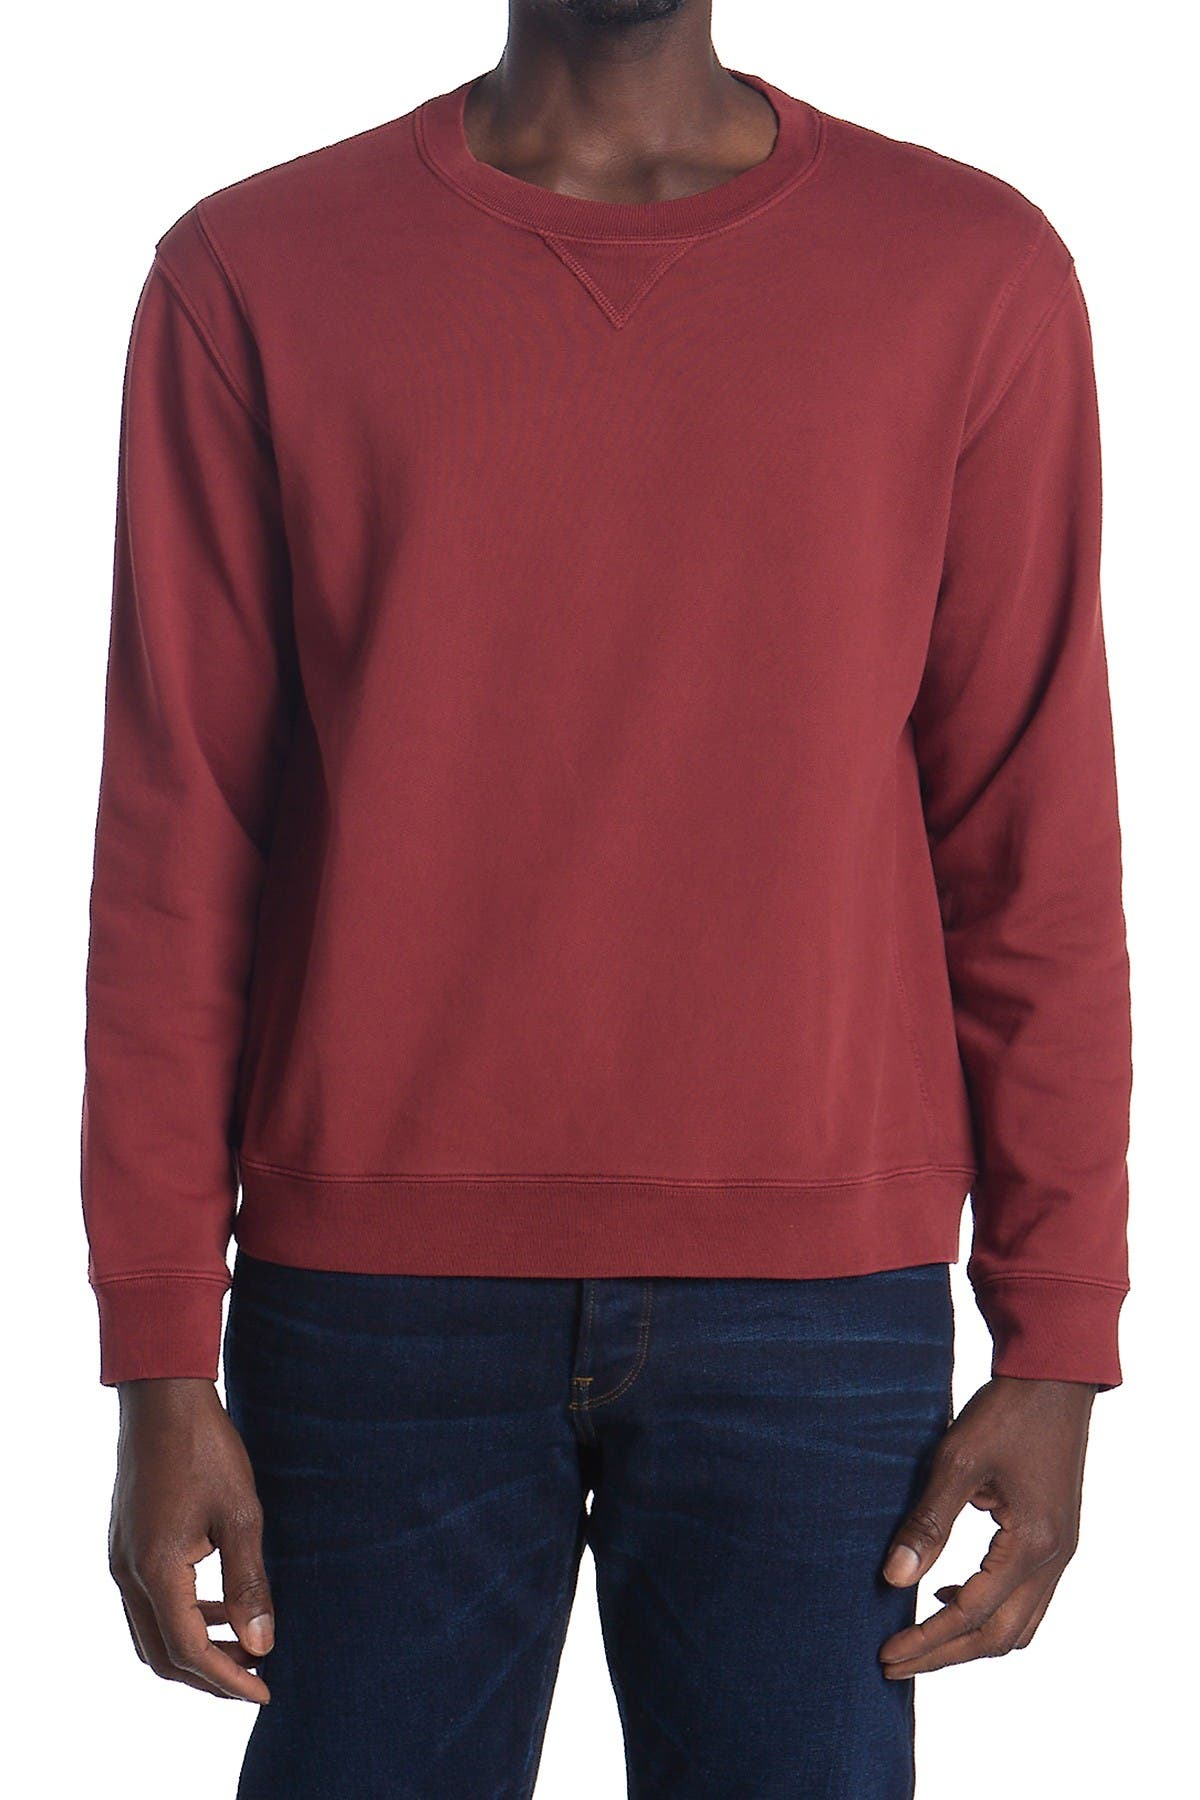 Image of 7 For All Mankind Vintage Crew Neck Pullover Sweatshirt